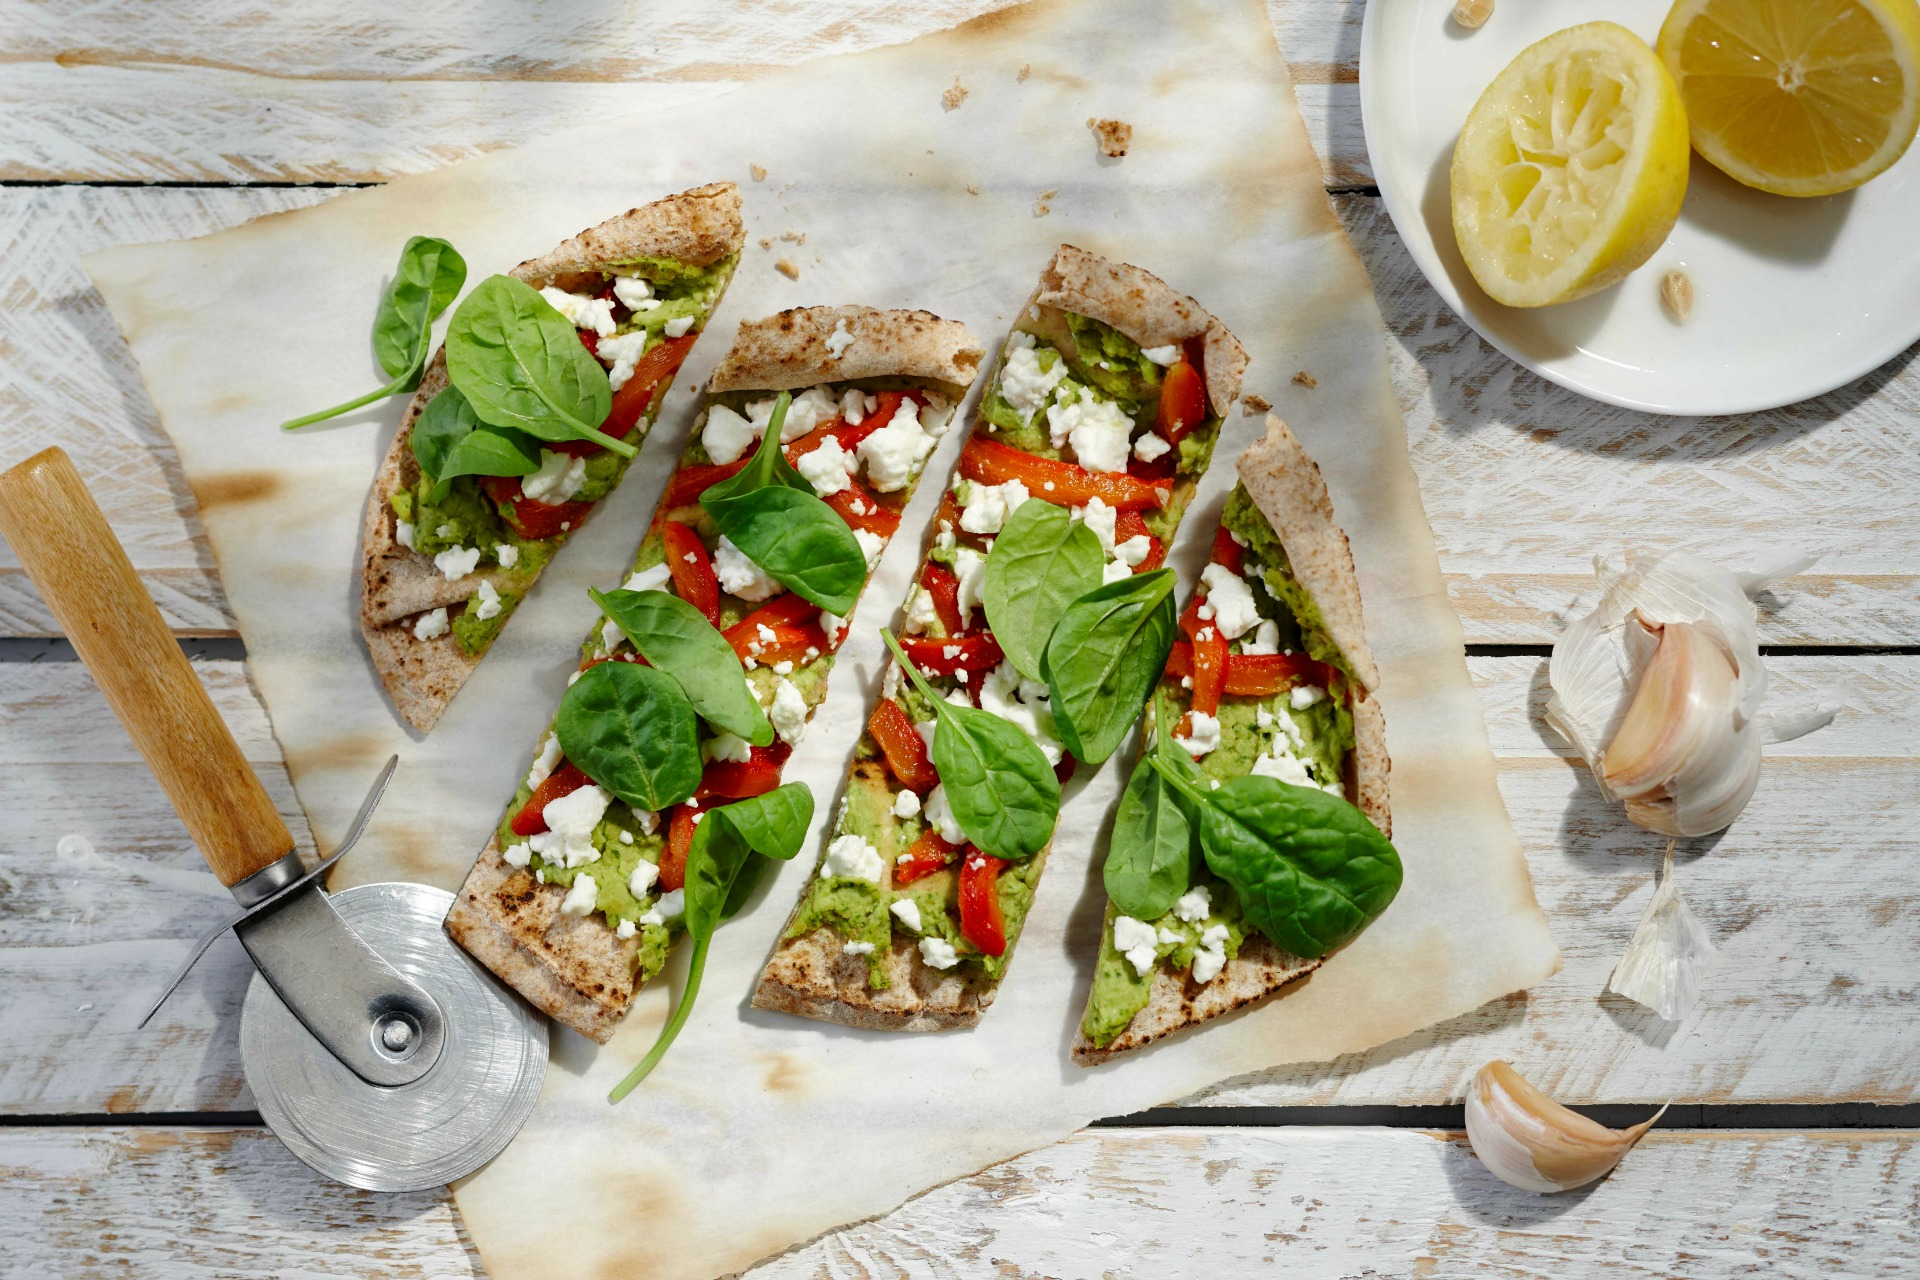 One roasted pepper, spinach and feta flatbread sliced on parchment paper, with a pizza cutter, garlic and lemon halved